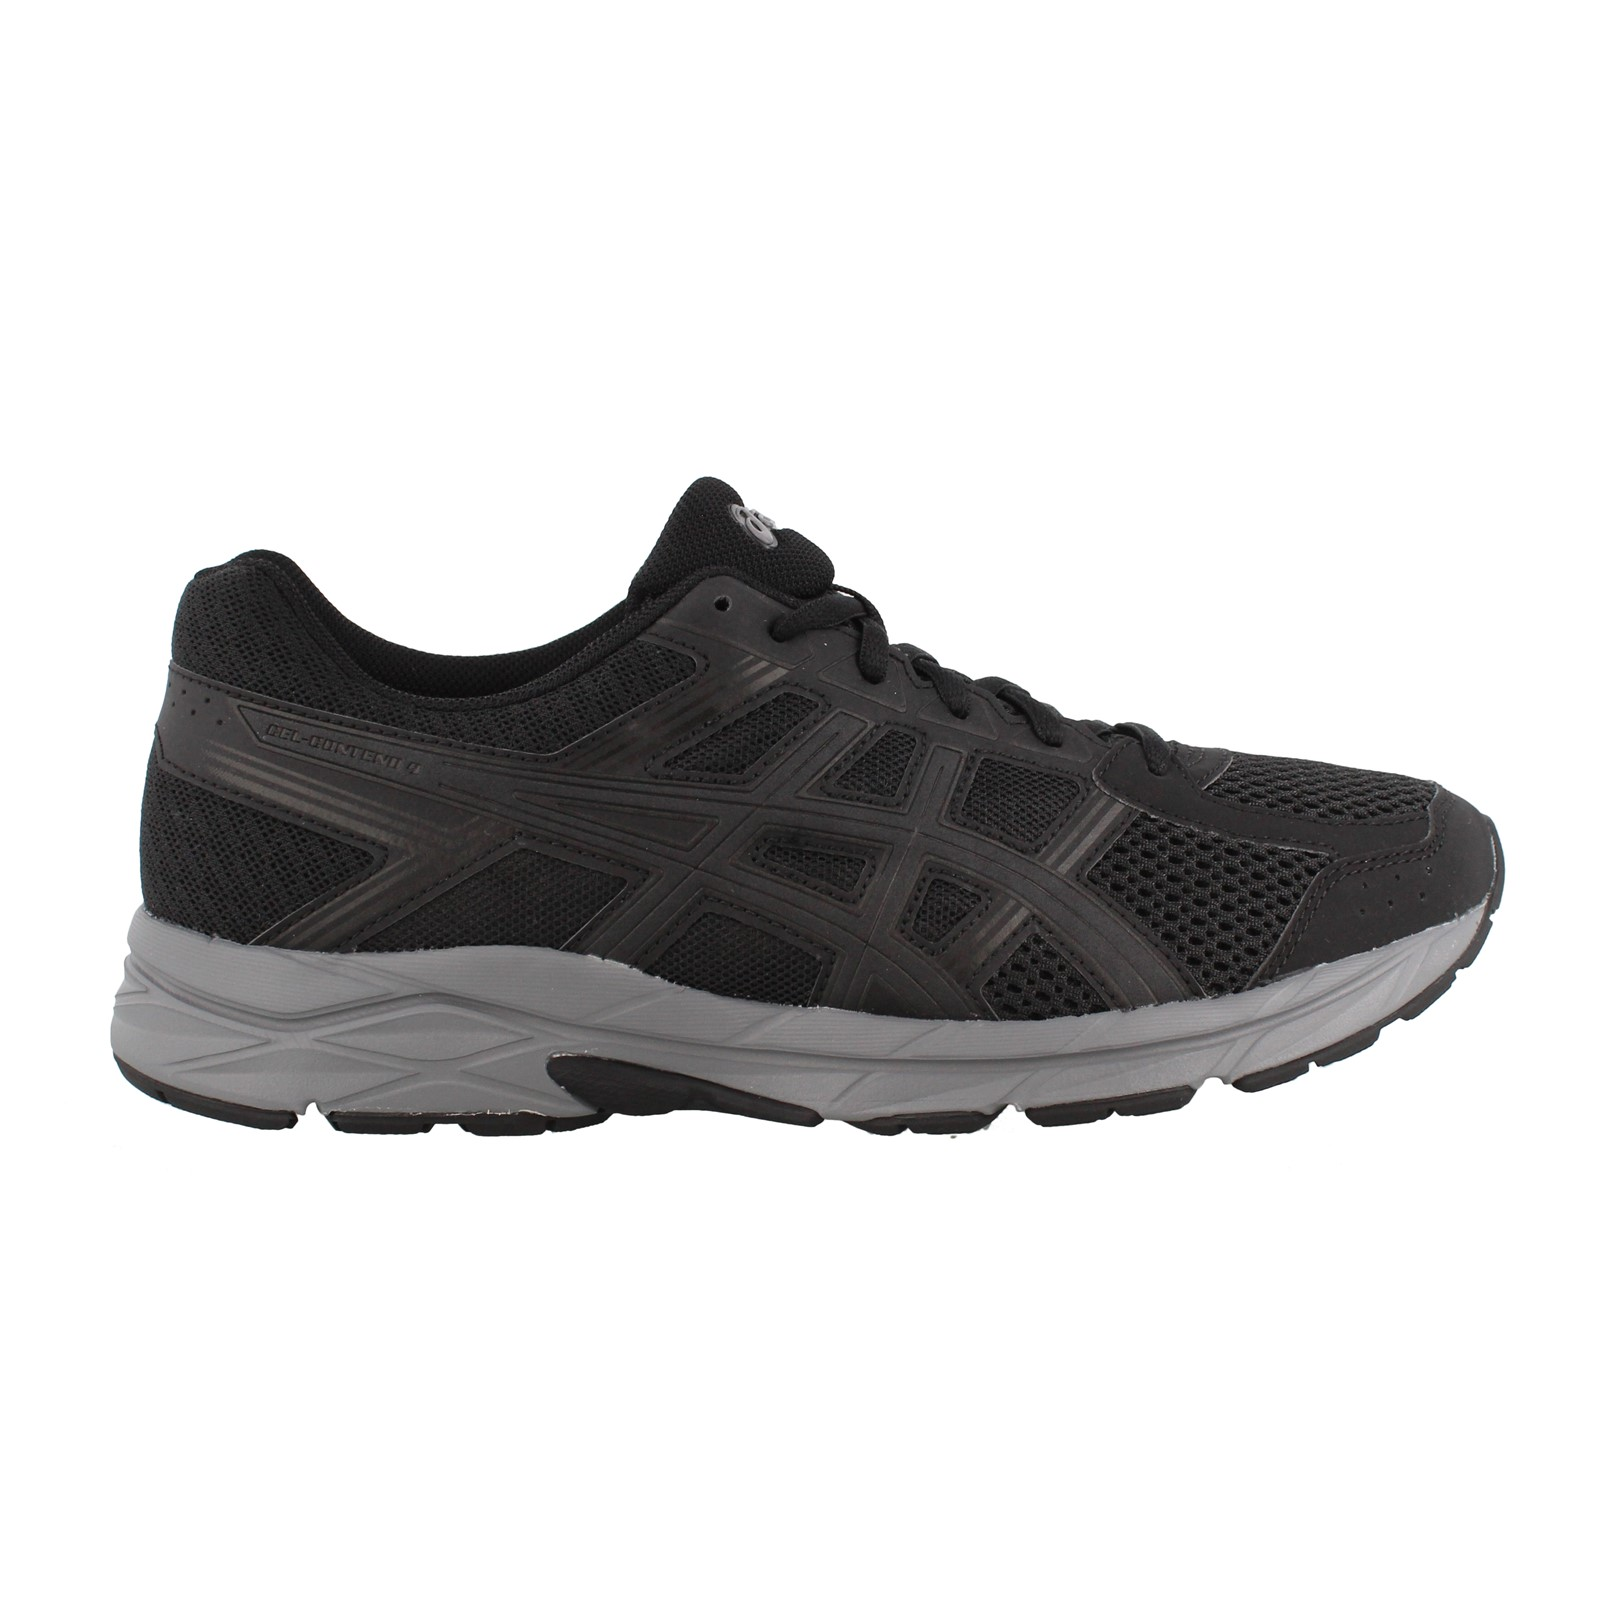 Contend Men's 4 AsicsGel Running Shoes Y76vbgmIfy